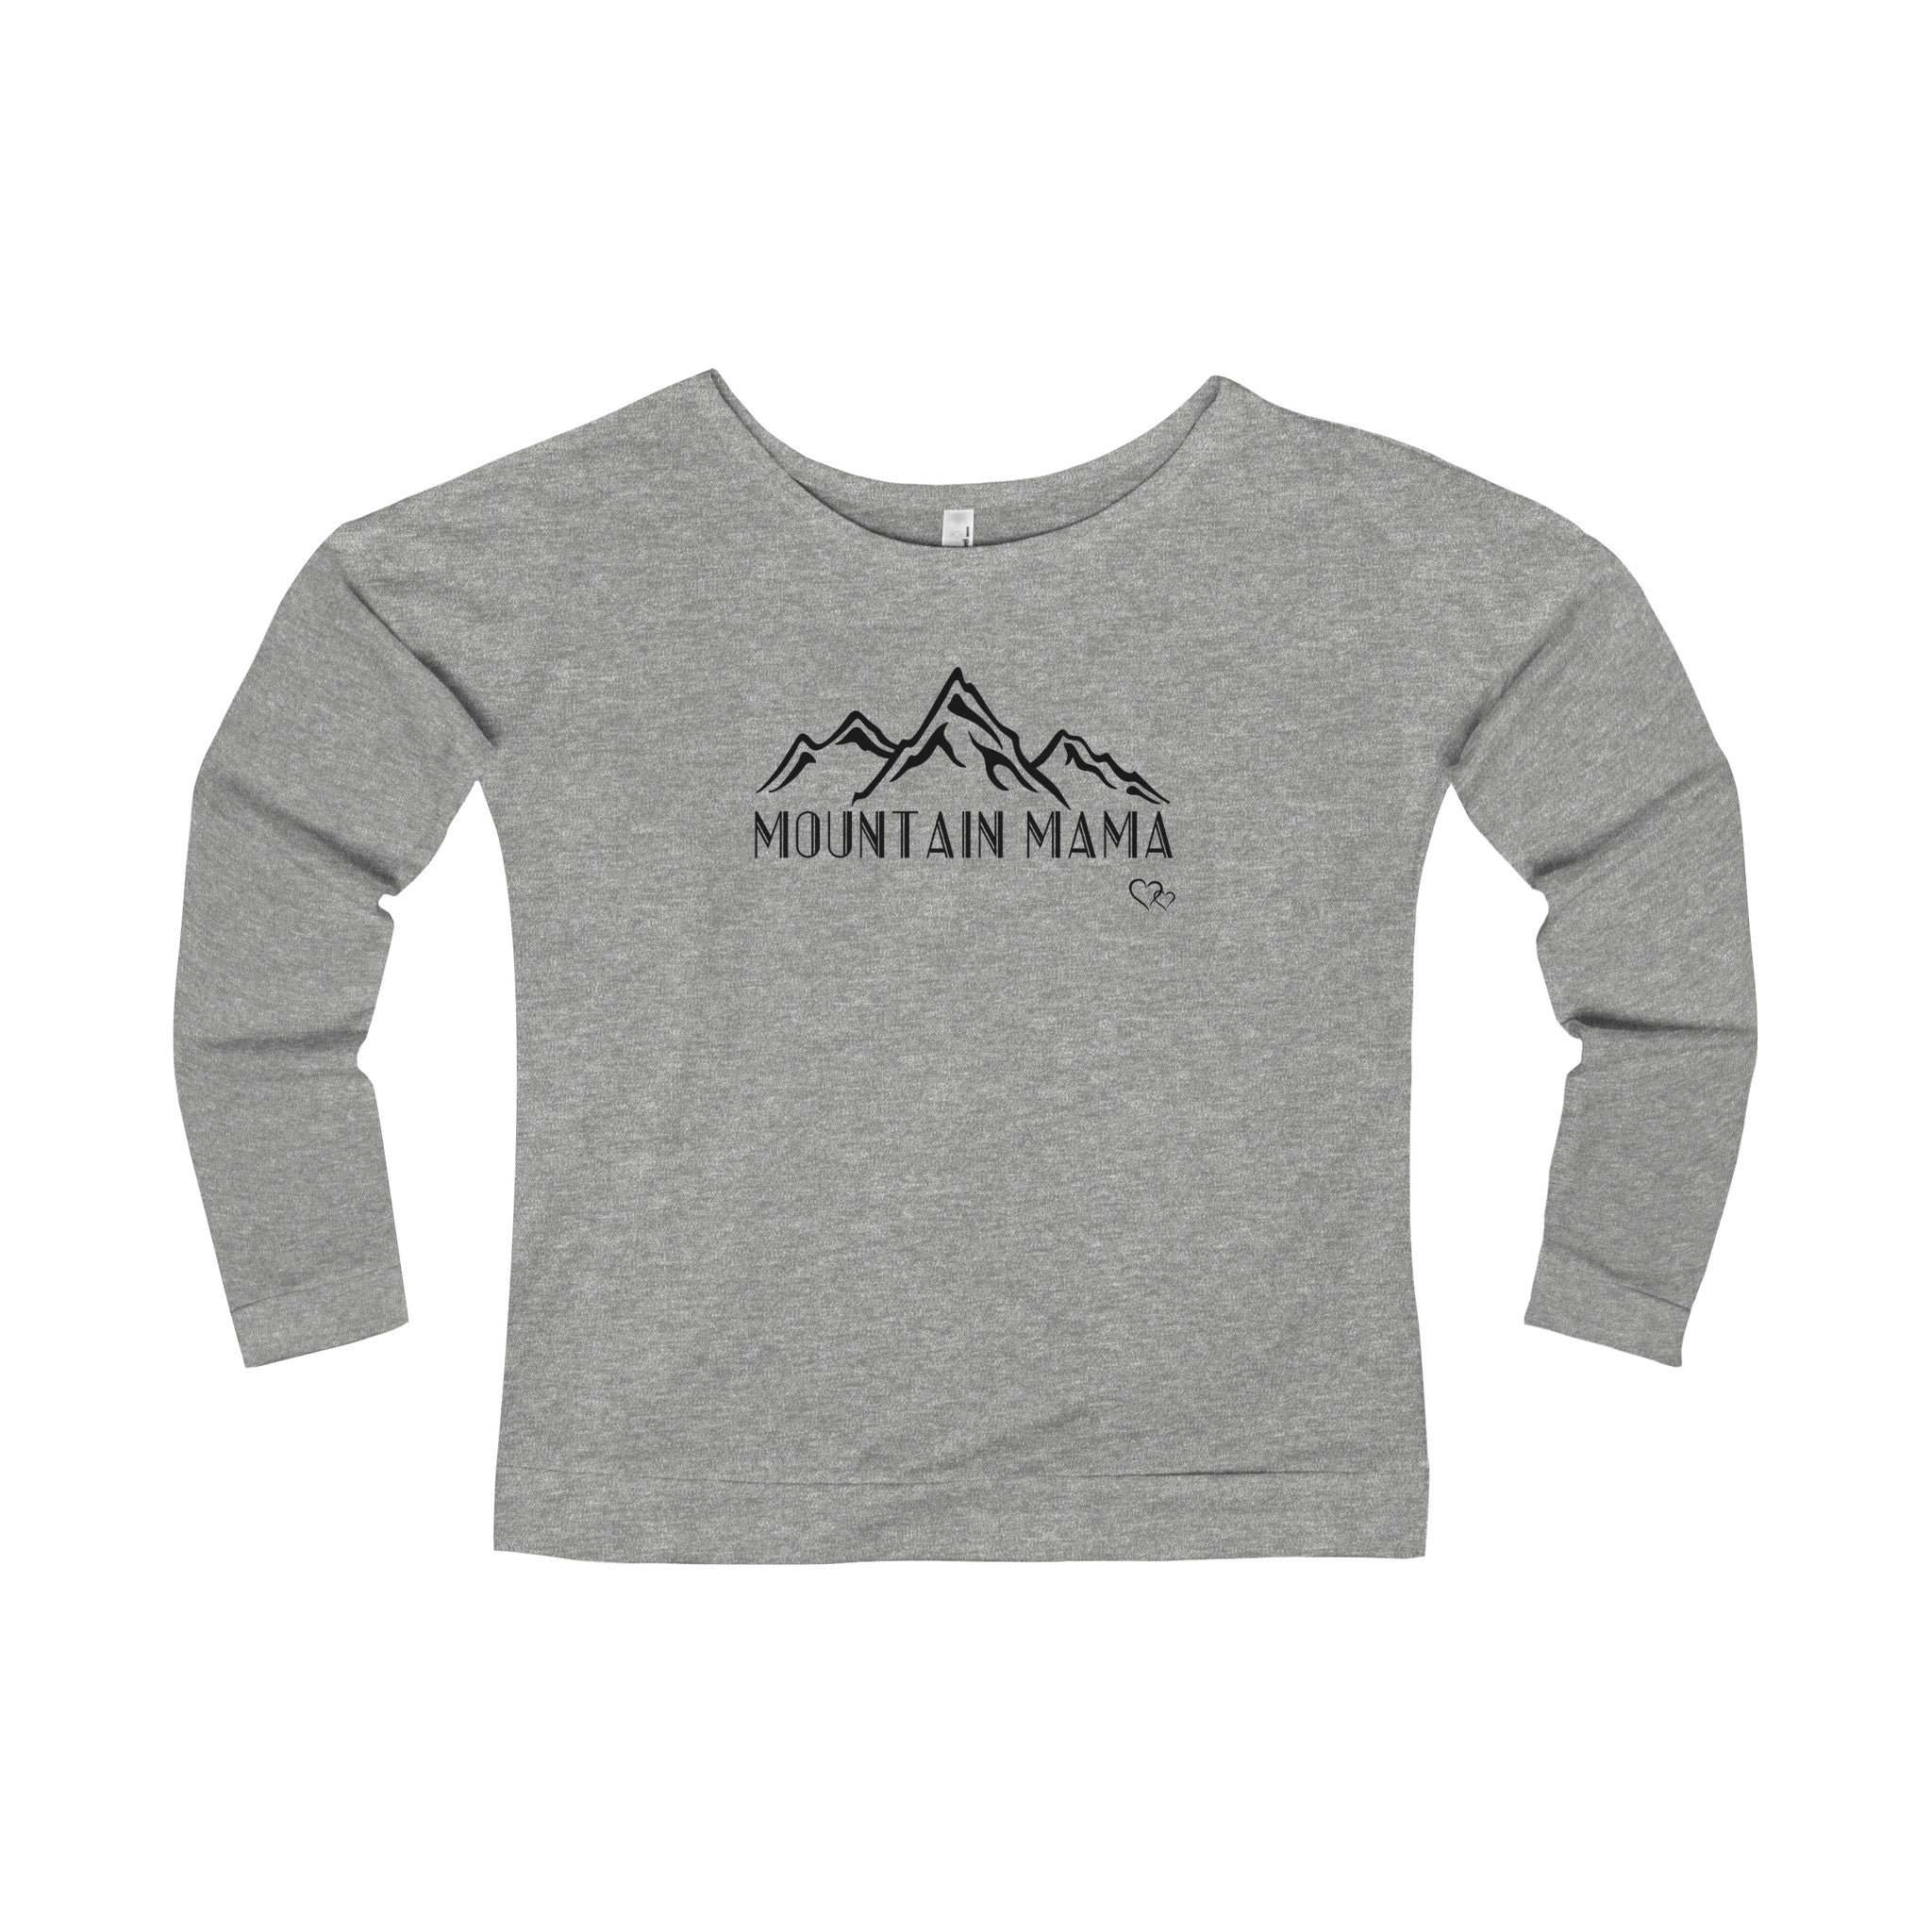 MOUNTAIN MAMA - Long Sleeve Scoop Terry T